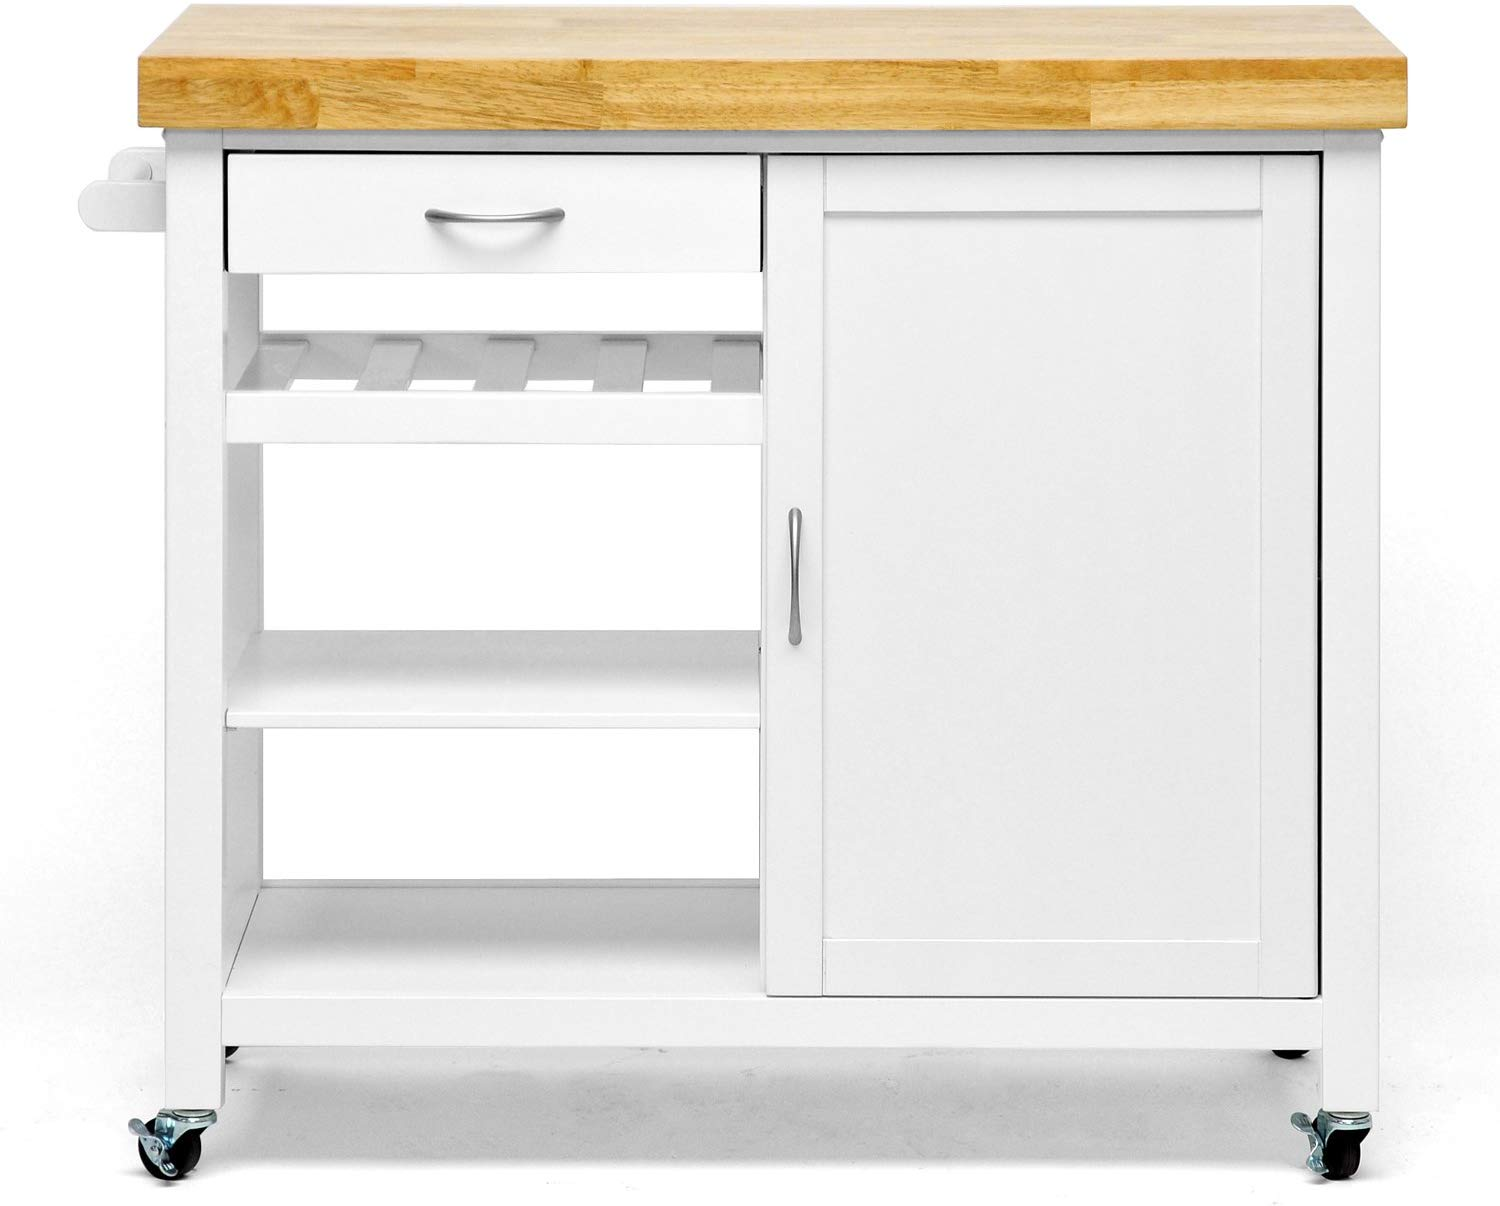 24 Inch X 48 Inch Kitchen Island Cart With Butcher Block Storables